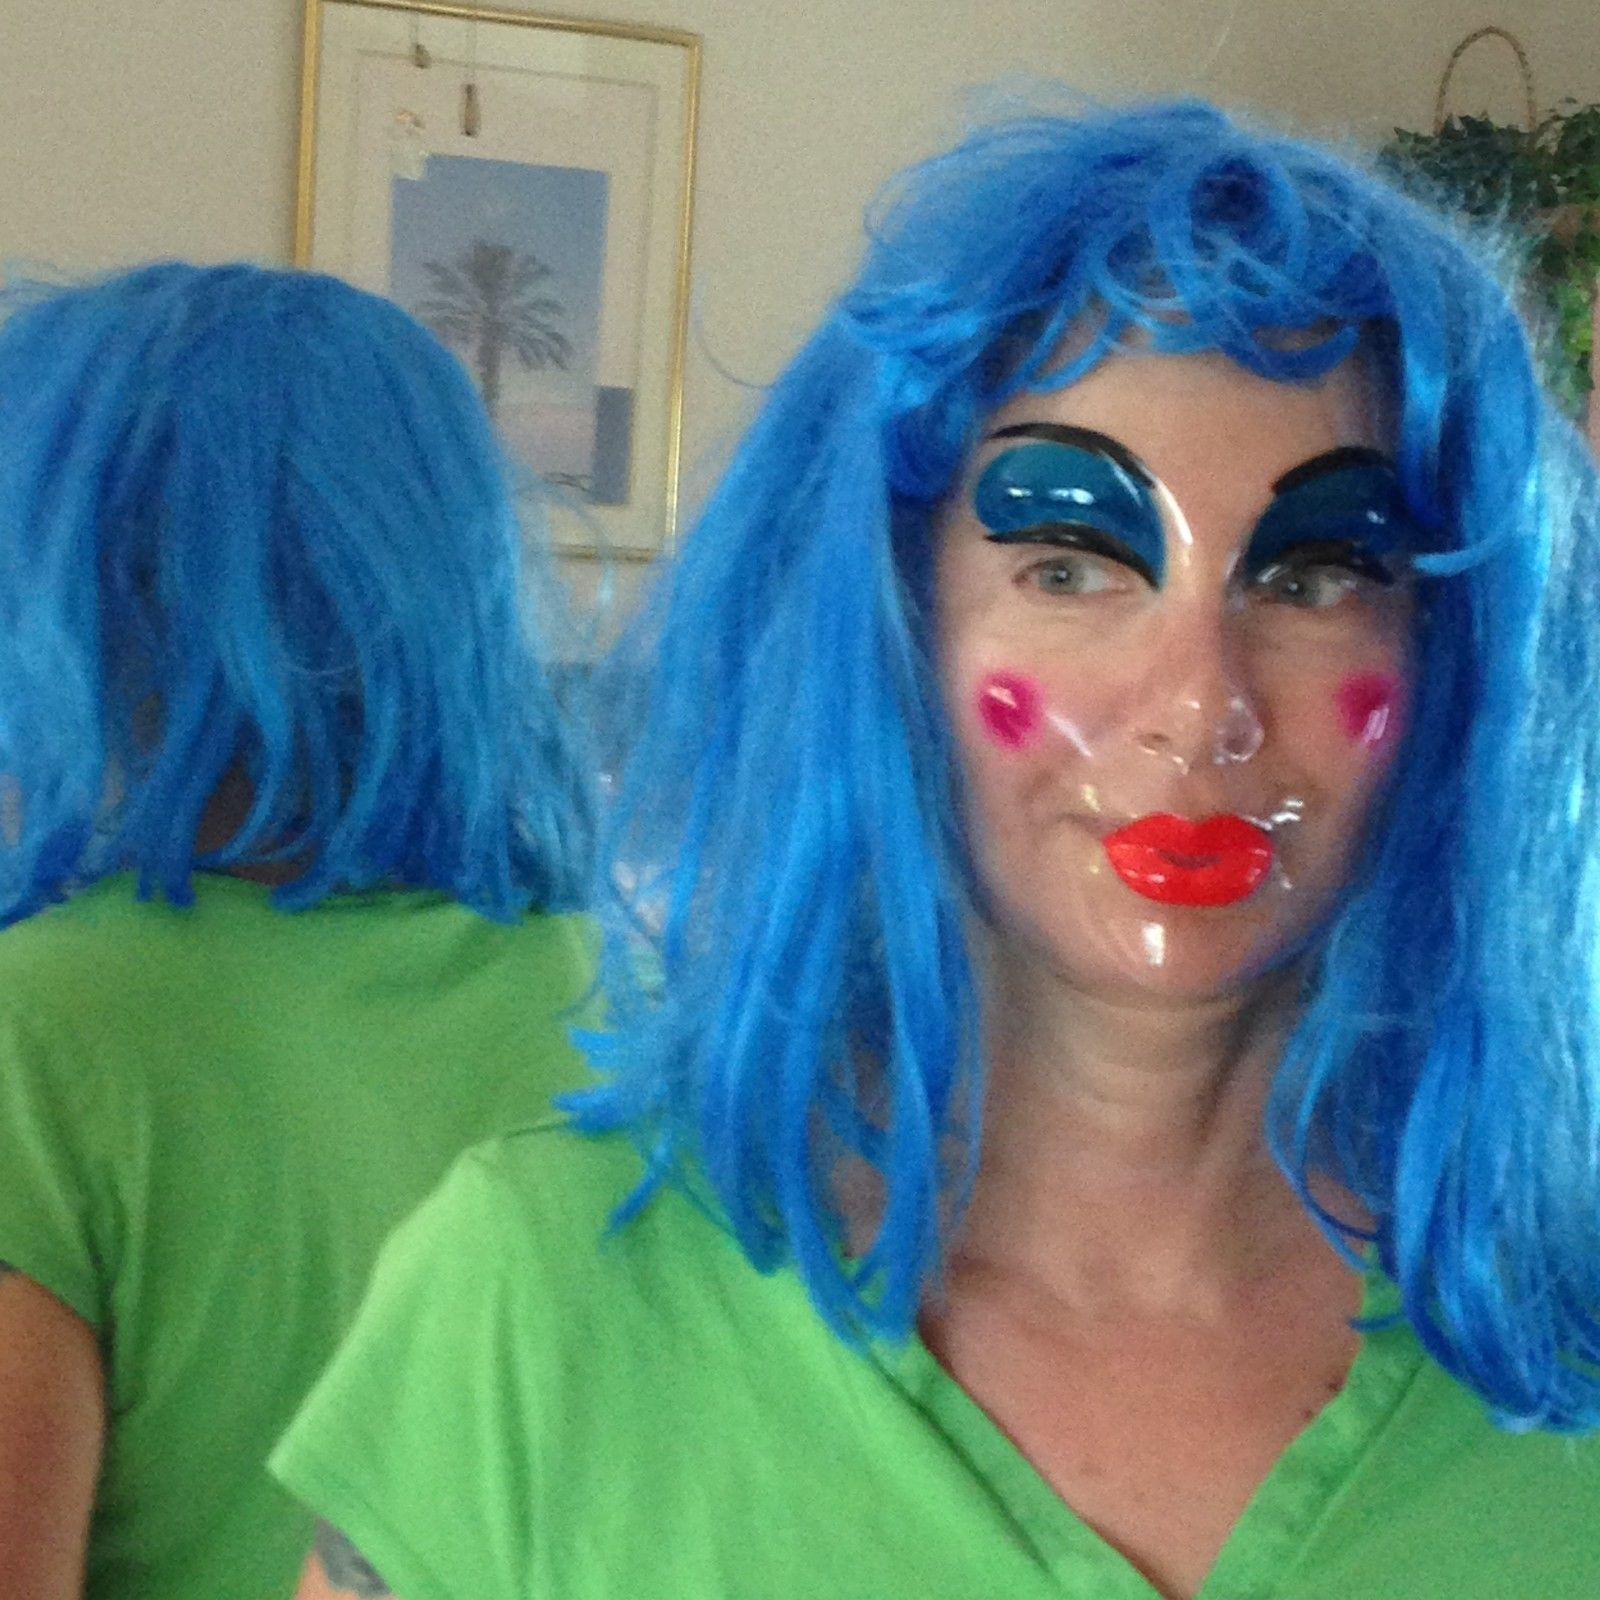 Bright Blue Straight Wig and Clear Painted Lady Mask Medium Length Hair